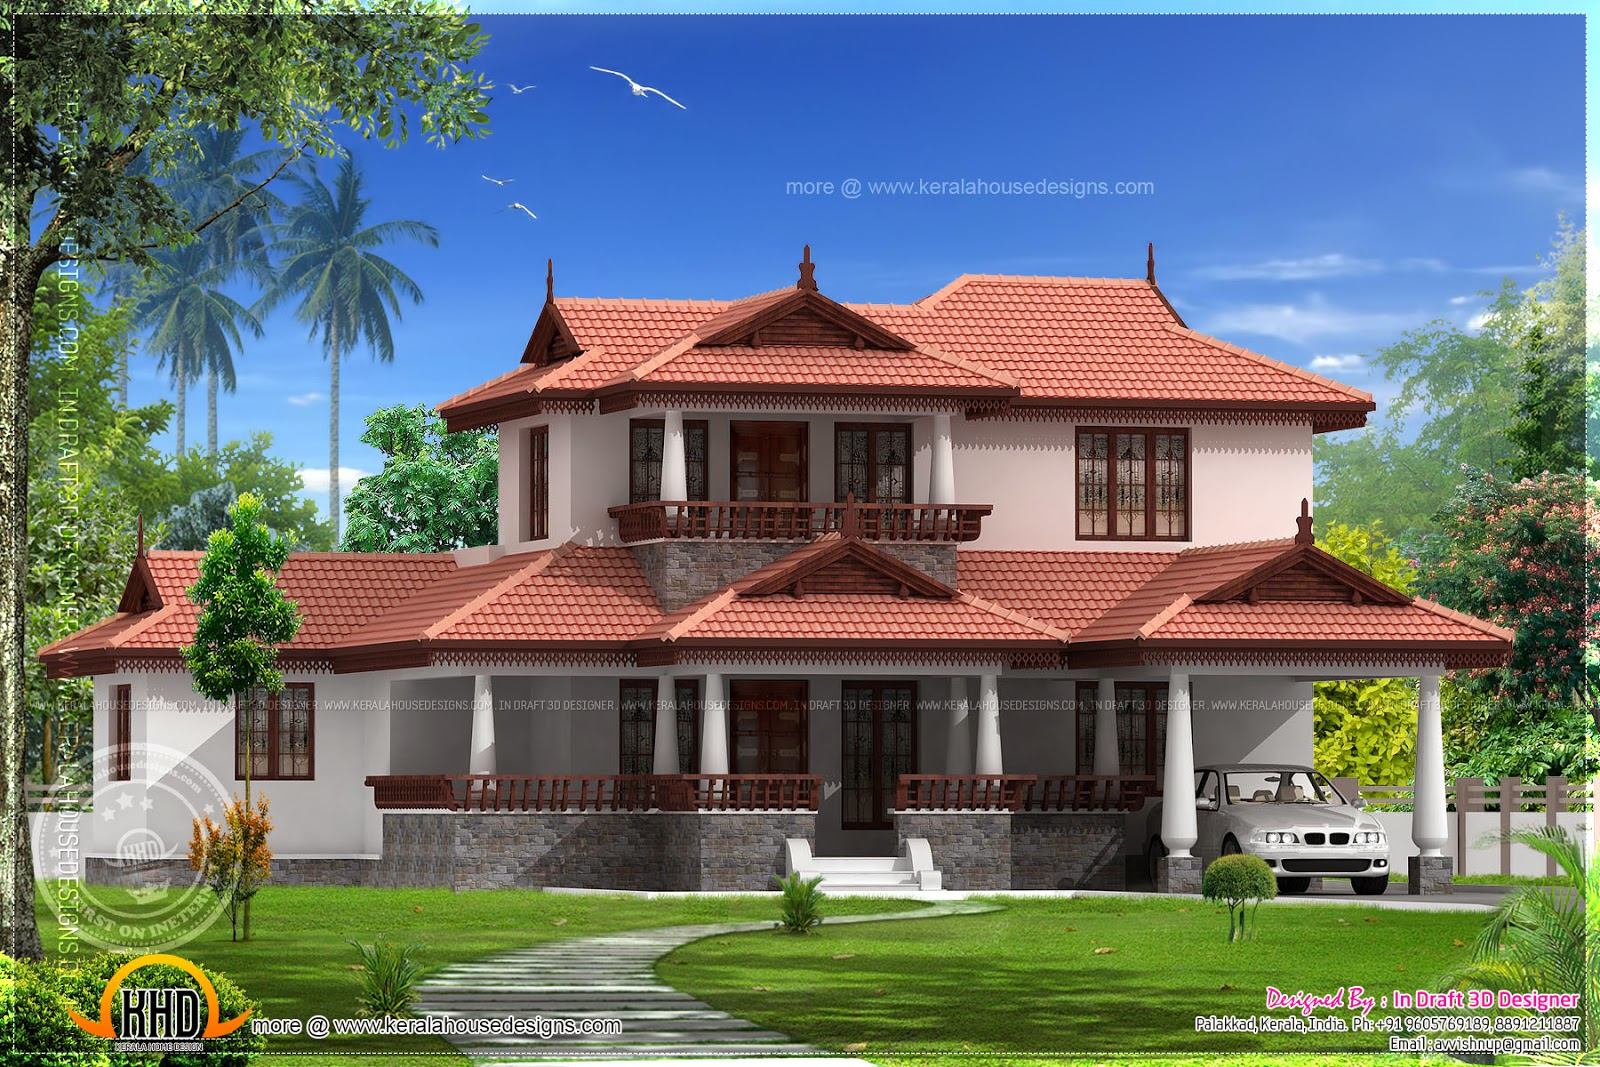 3 bedroom kerala model home elevation kerala home design for New model houses in kerala